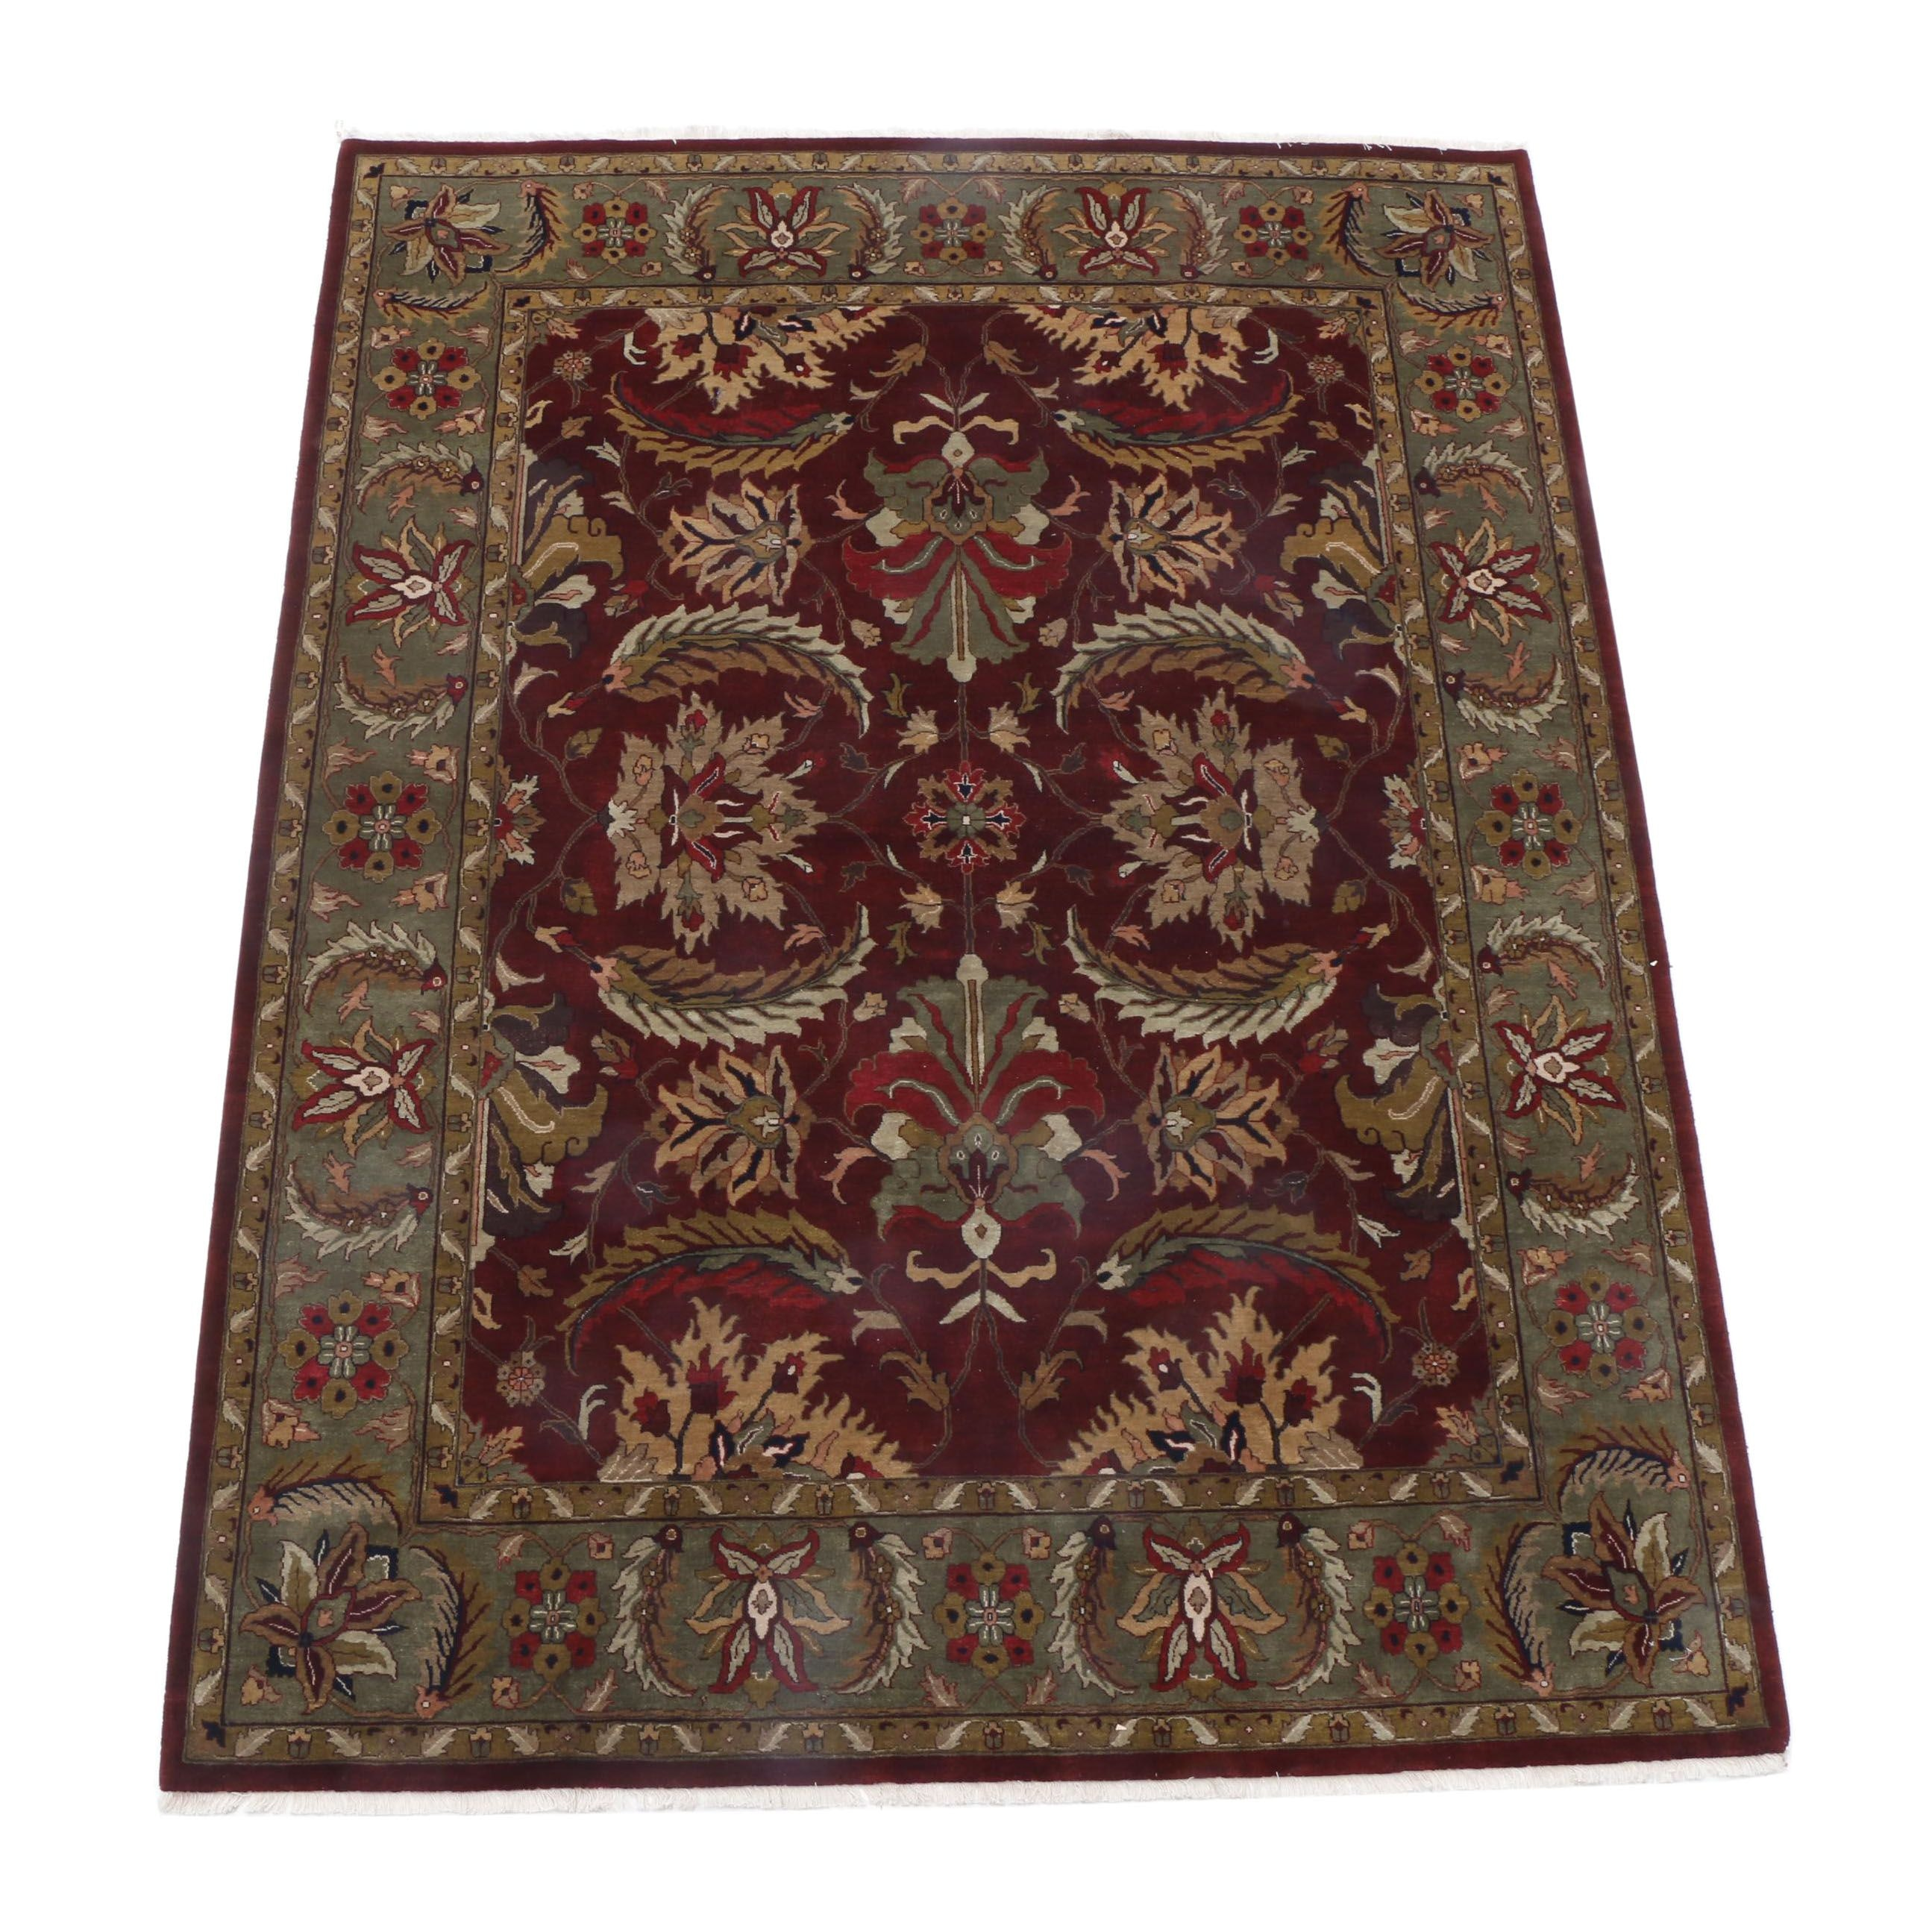 Hand-Knotted Indo-Persian Room-Size Rug